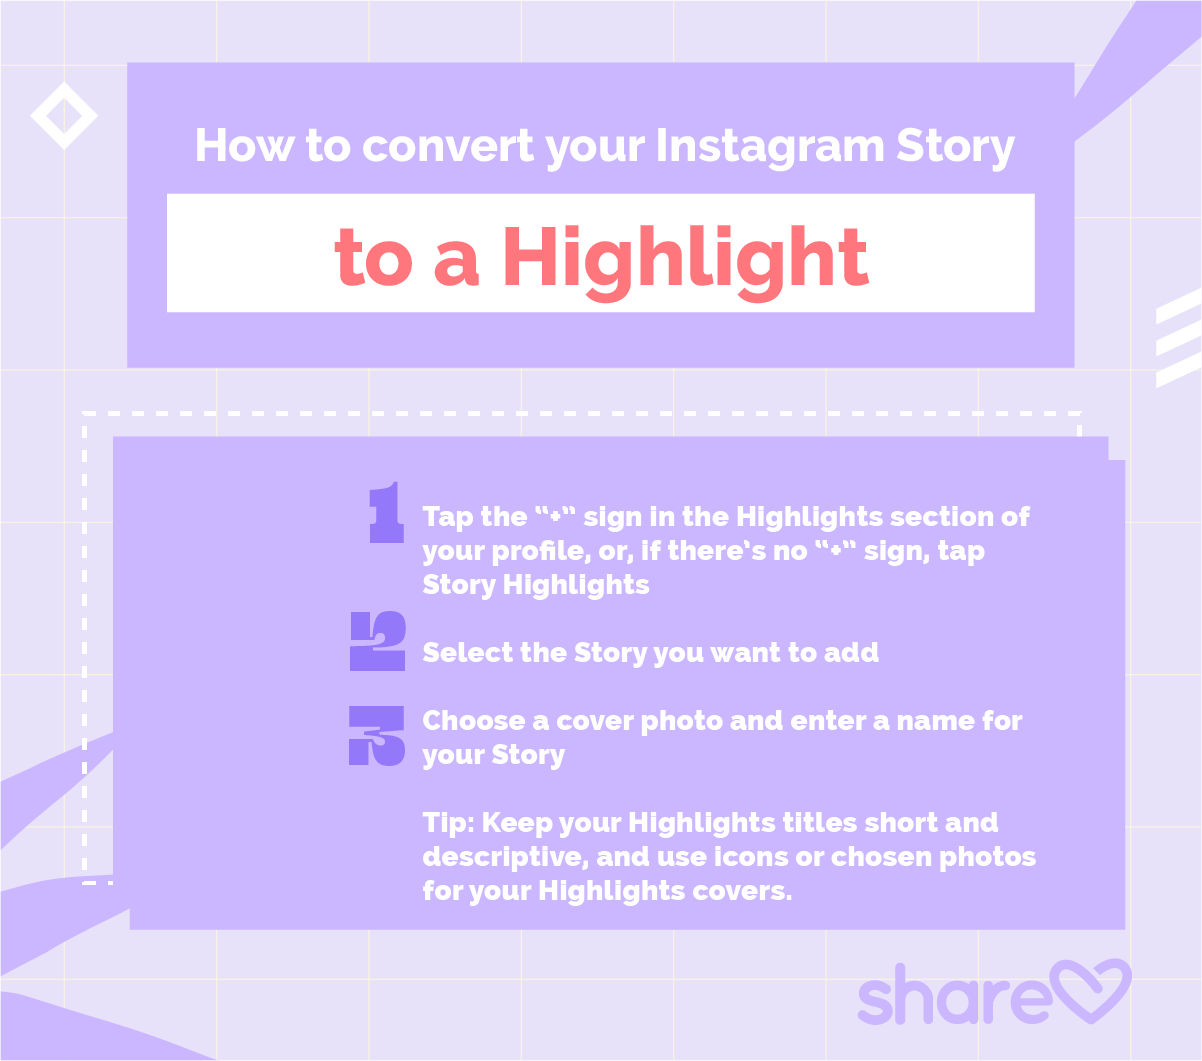 How to convert your Instagram Story to a Highlight